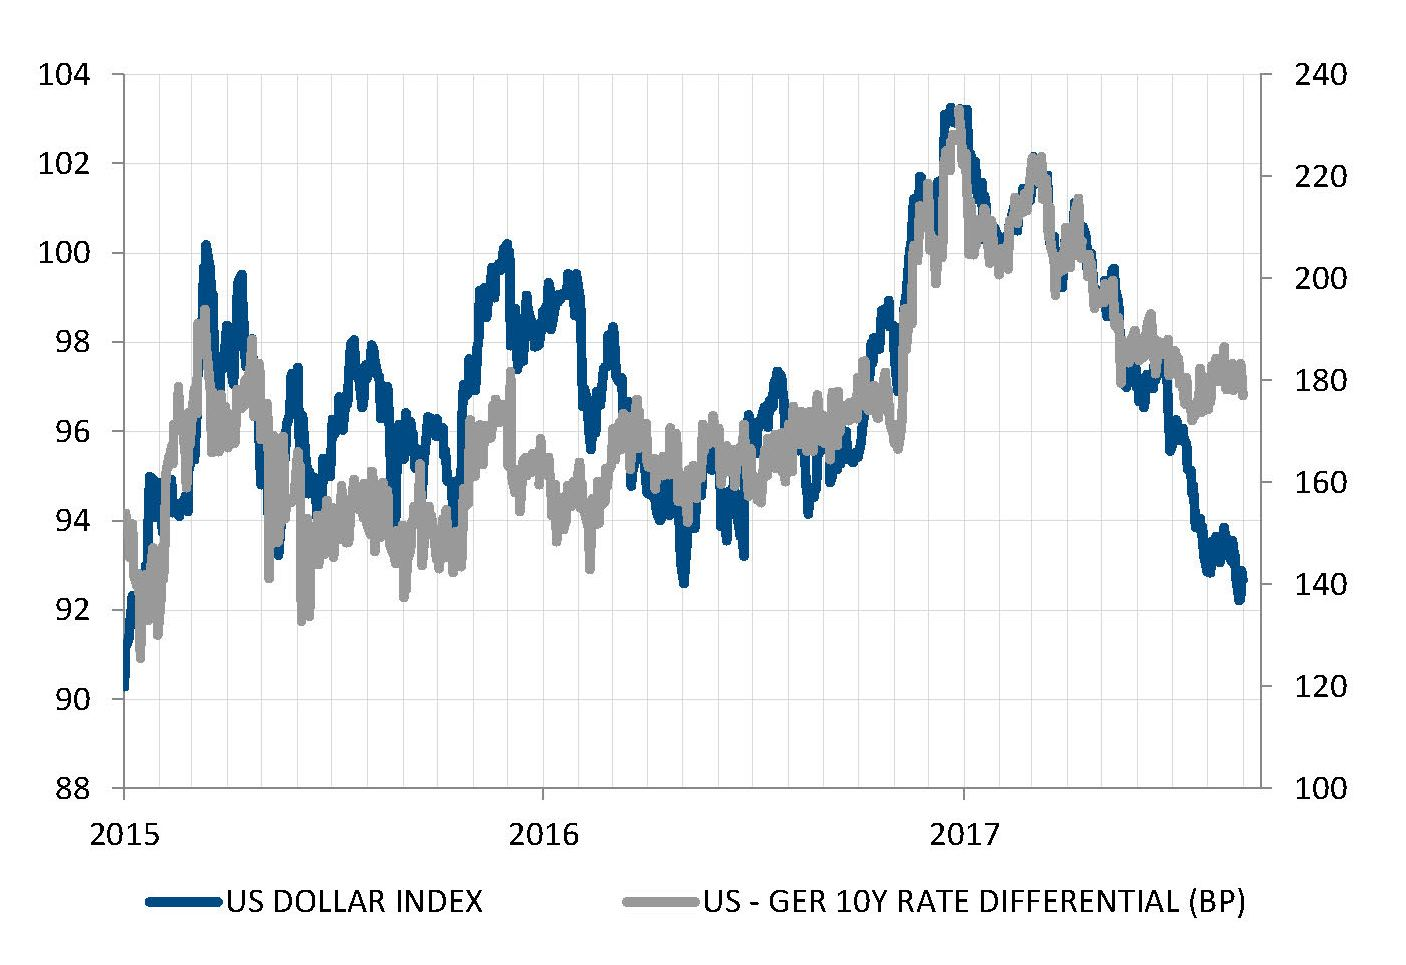 A stronger dollar's decline than what rate differentials suggest